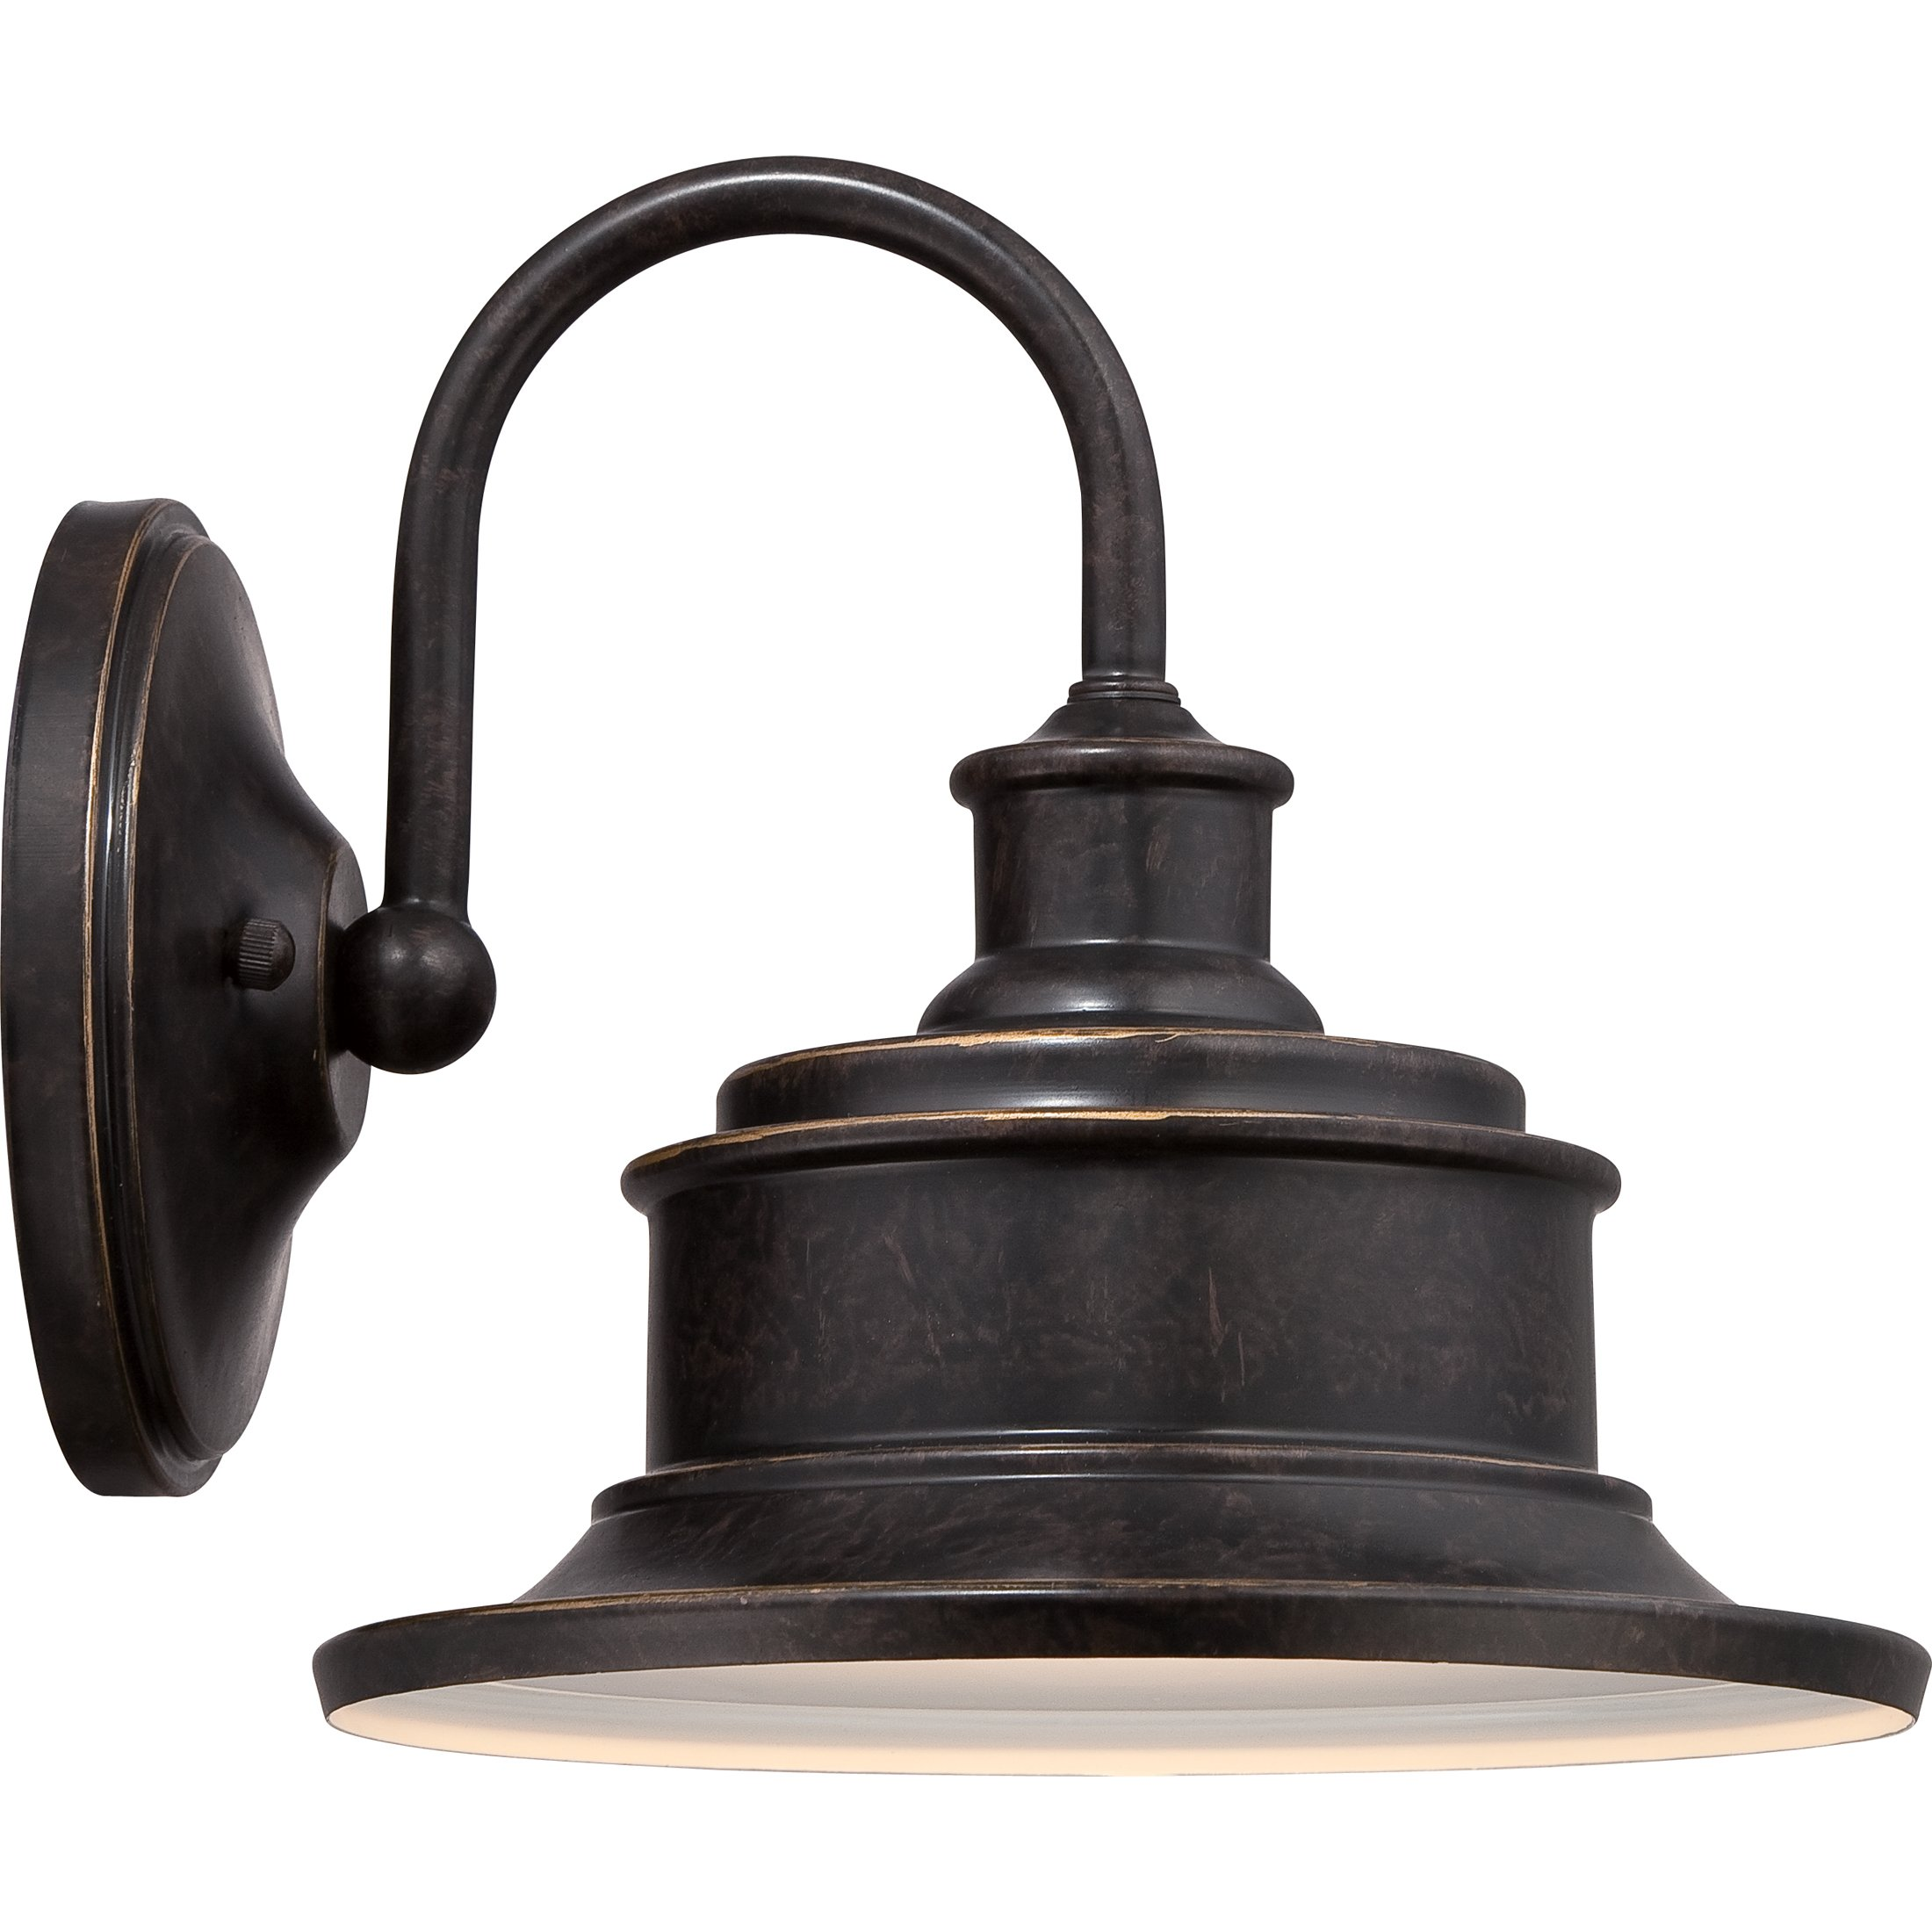 Quoizel SFD8411IB One Light Outdoor Wall Tabletop Lanterns Large Imperial Bronze by Quoizel (Image #4)